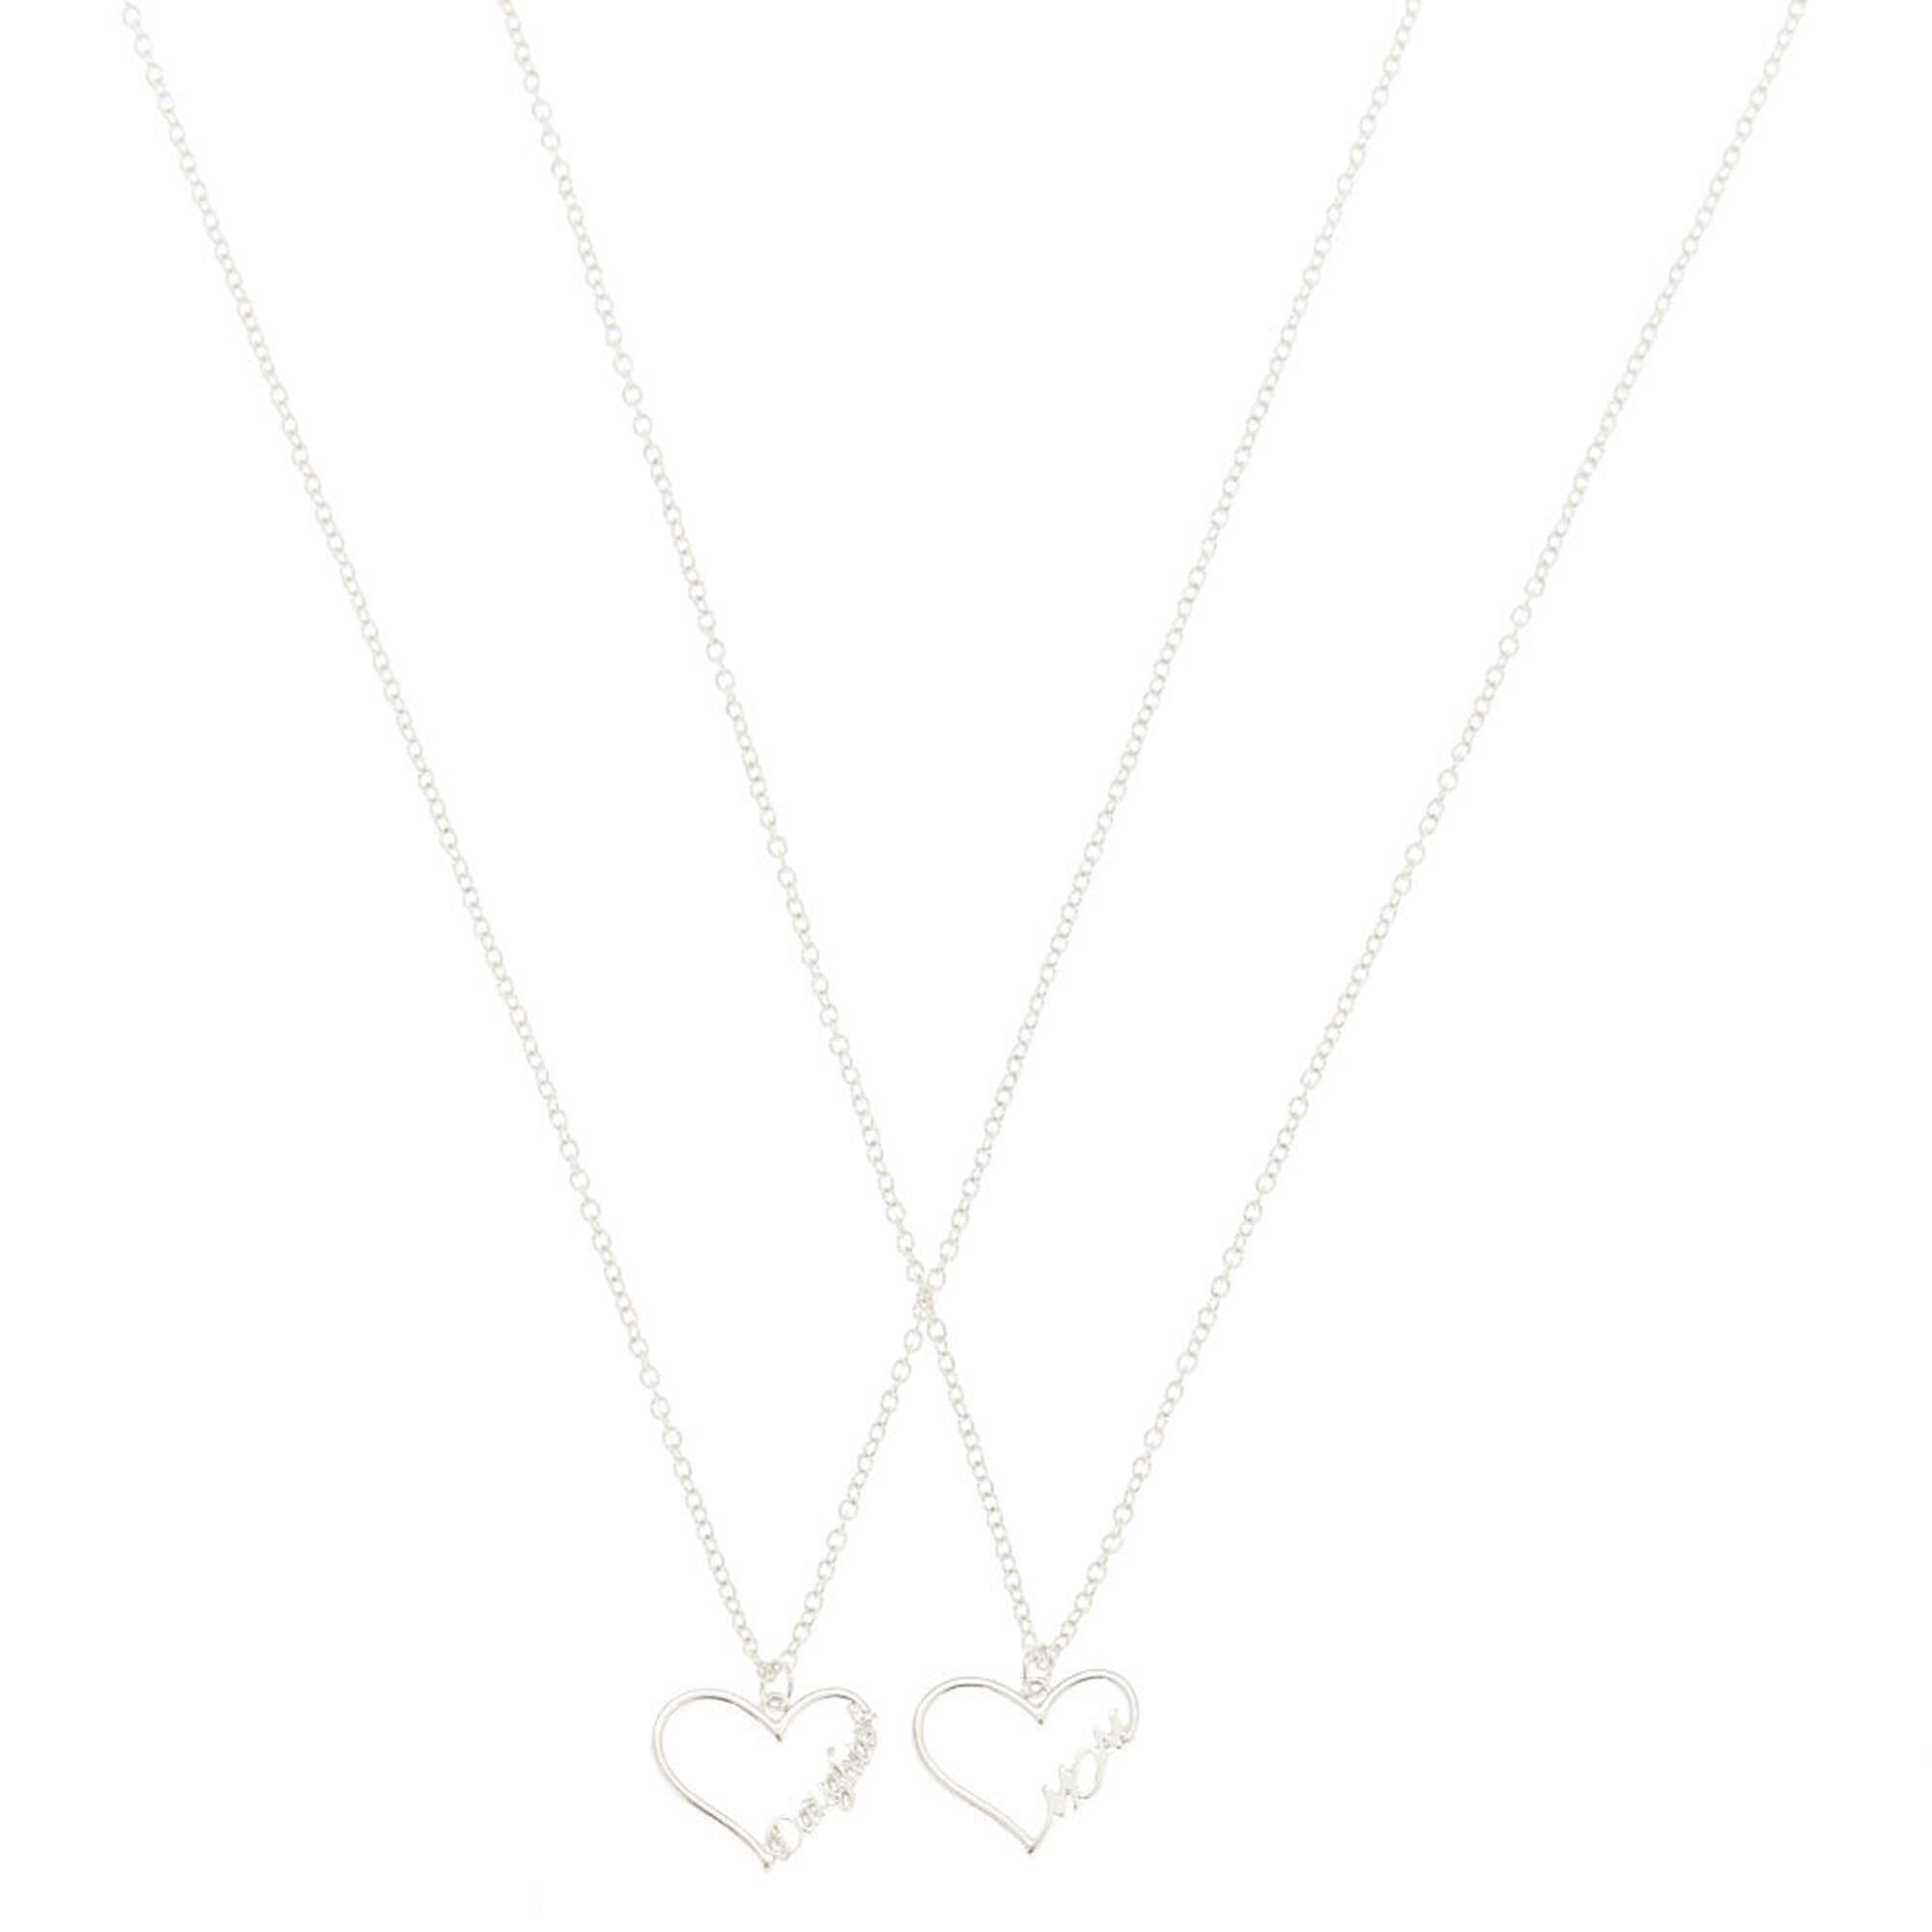 Mom and daughter pendant necklace set claires ca mom and daughter pendant necklace set aloadofball Gallery